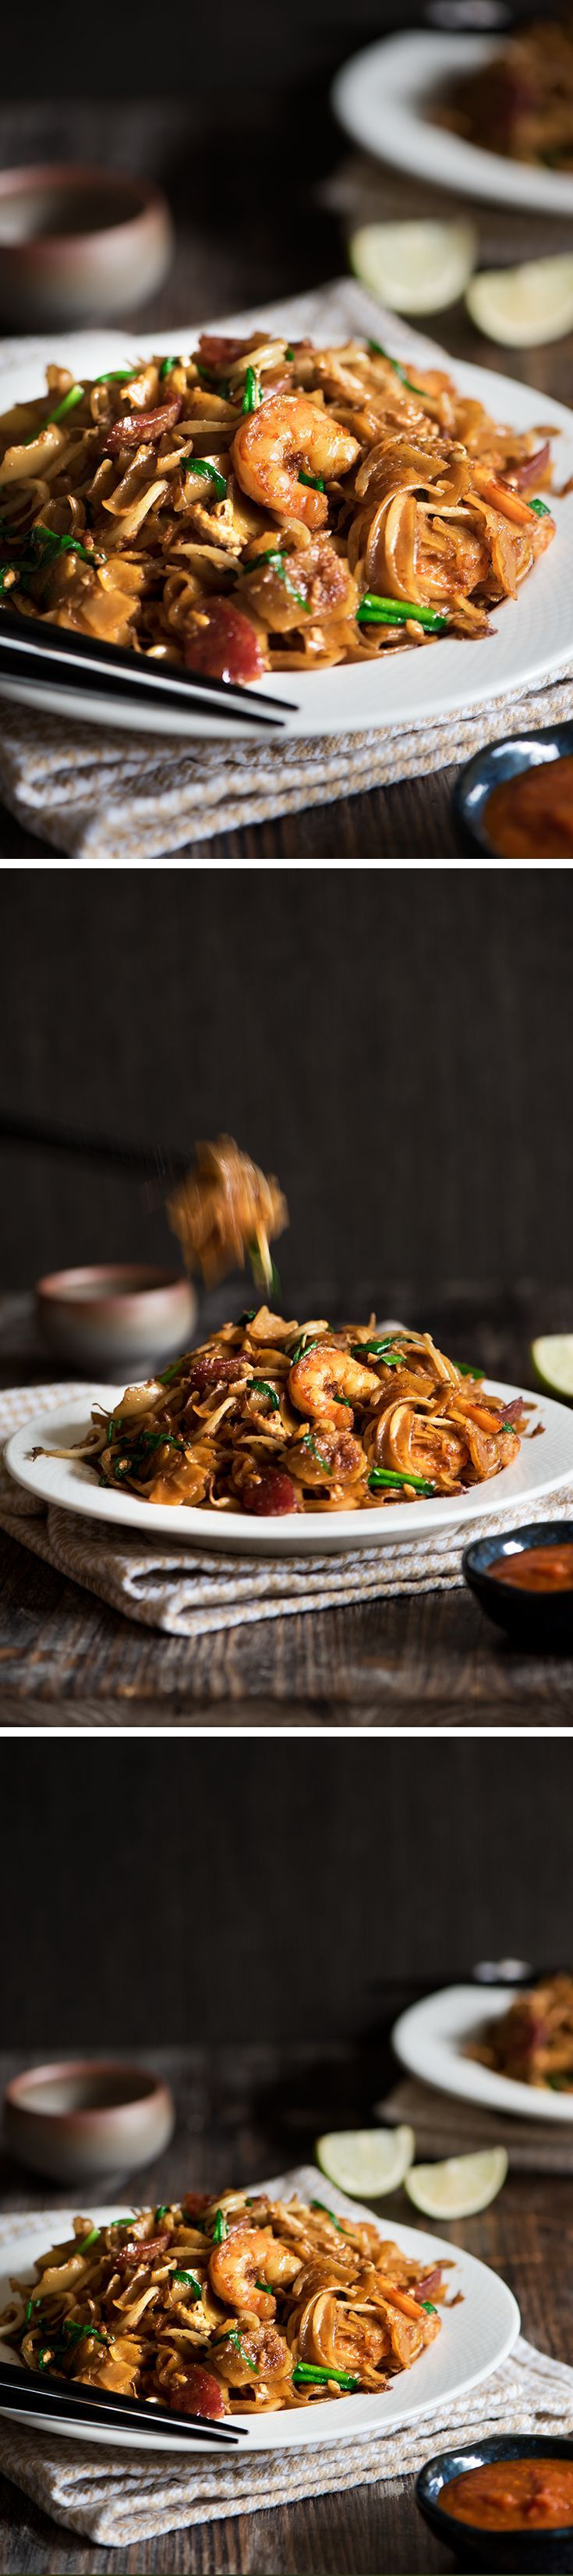 One of the most popular street food in Malaysia, Char Kway Teow is smoky fried noodles with lard, sausages and prawns cooked in just 5 minutes.